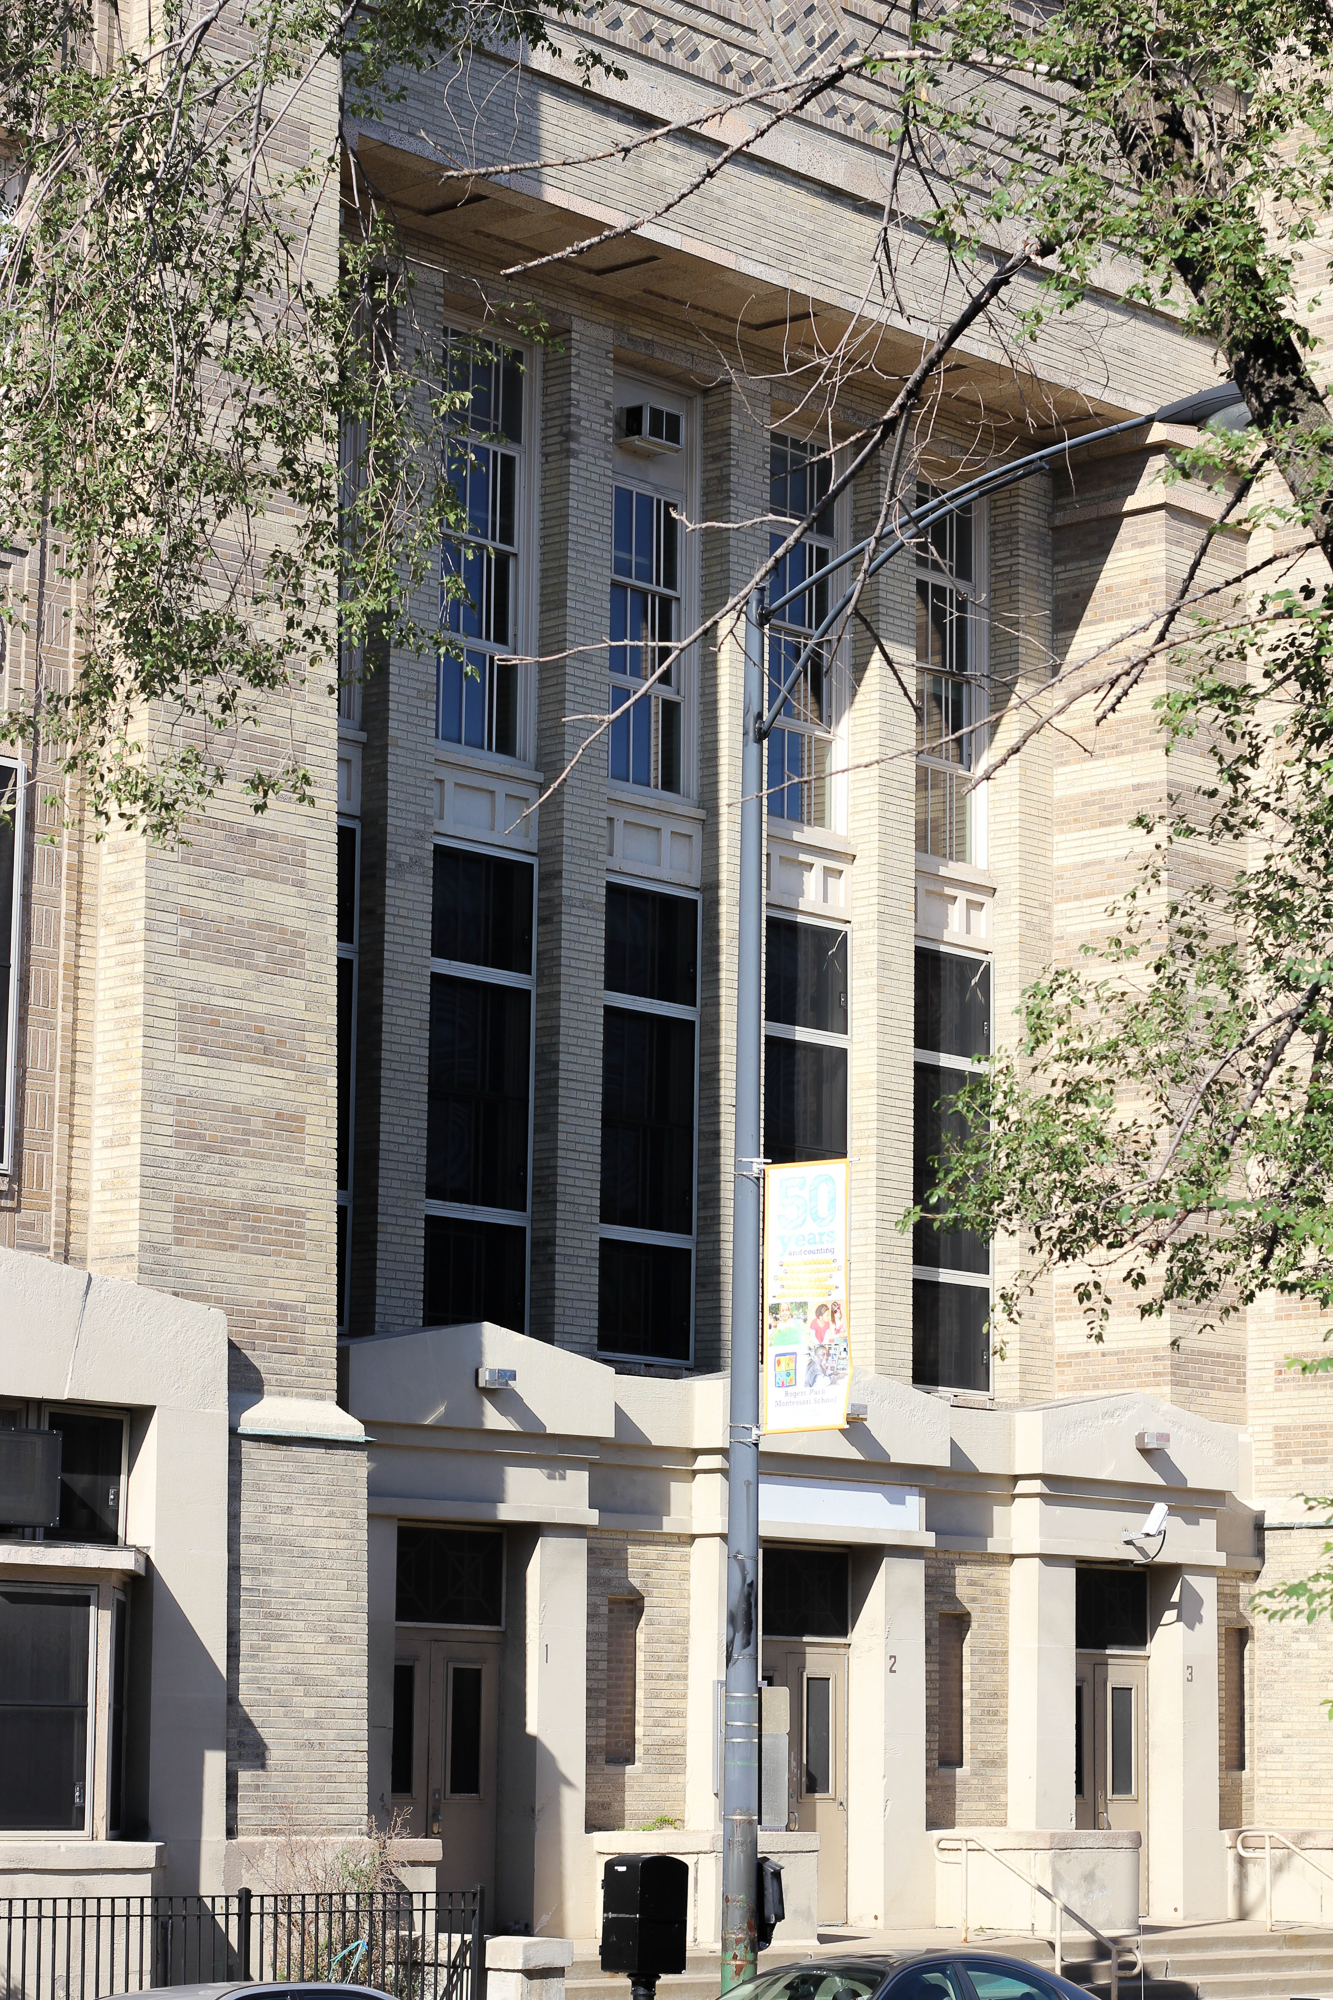 Trumbull Elementary School in Andersonville was sold to private developers who intend redevelop the building as residential units and a community arts space.